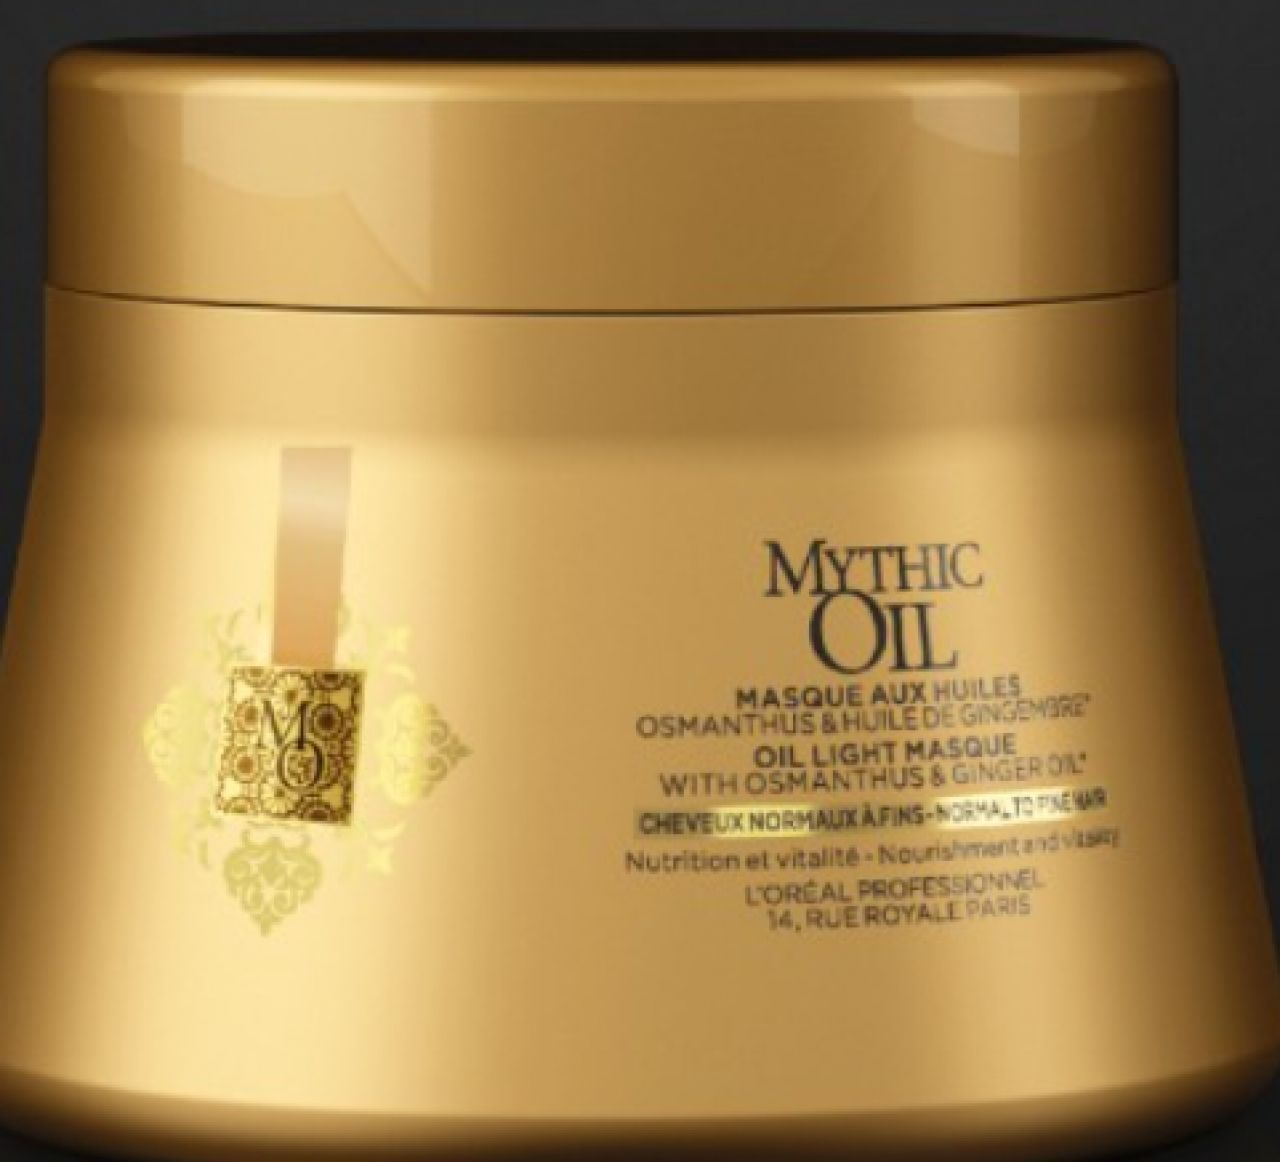 LOVE MY HAIR - masque mythic oil cheveux normaux à fins